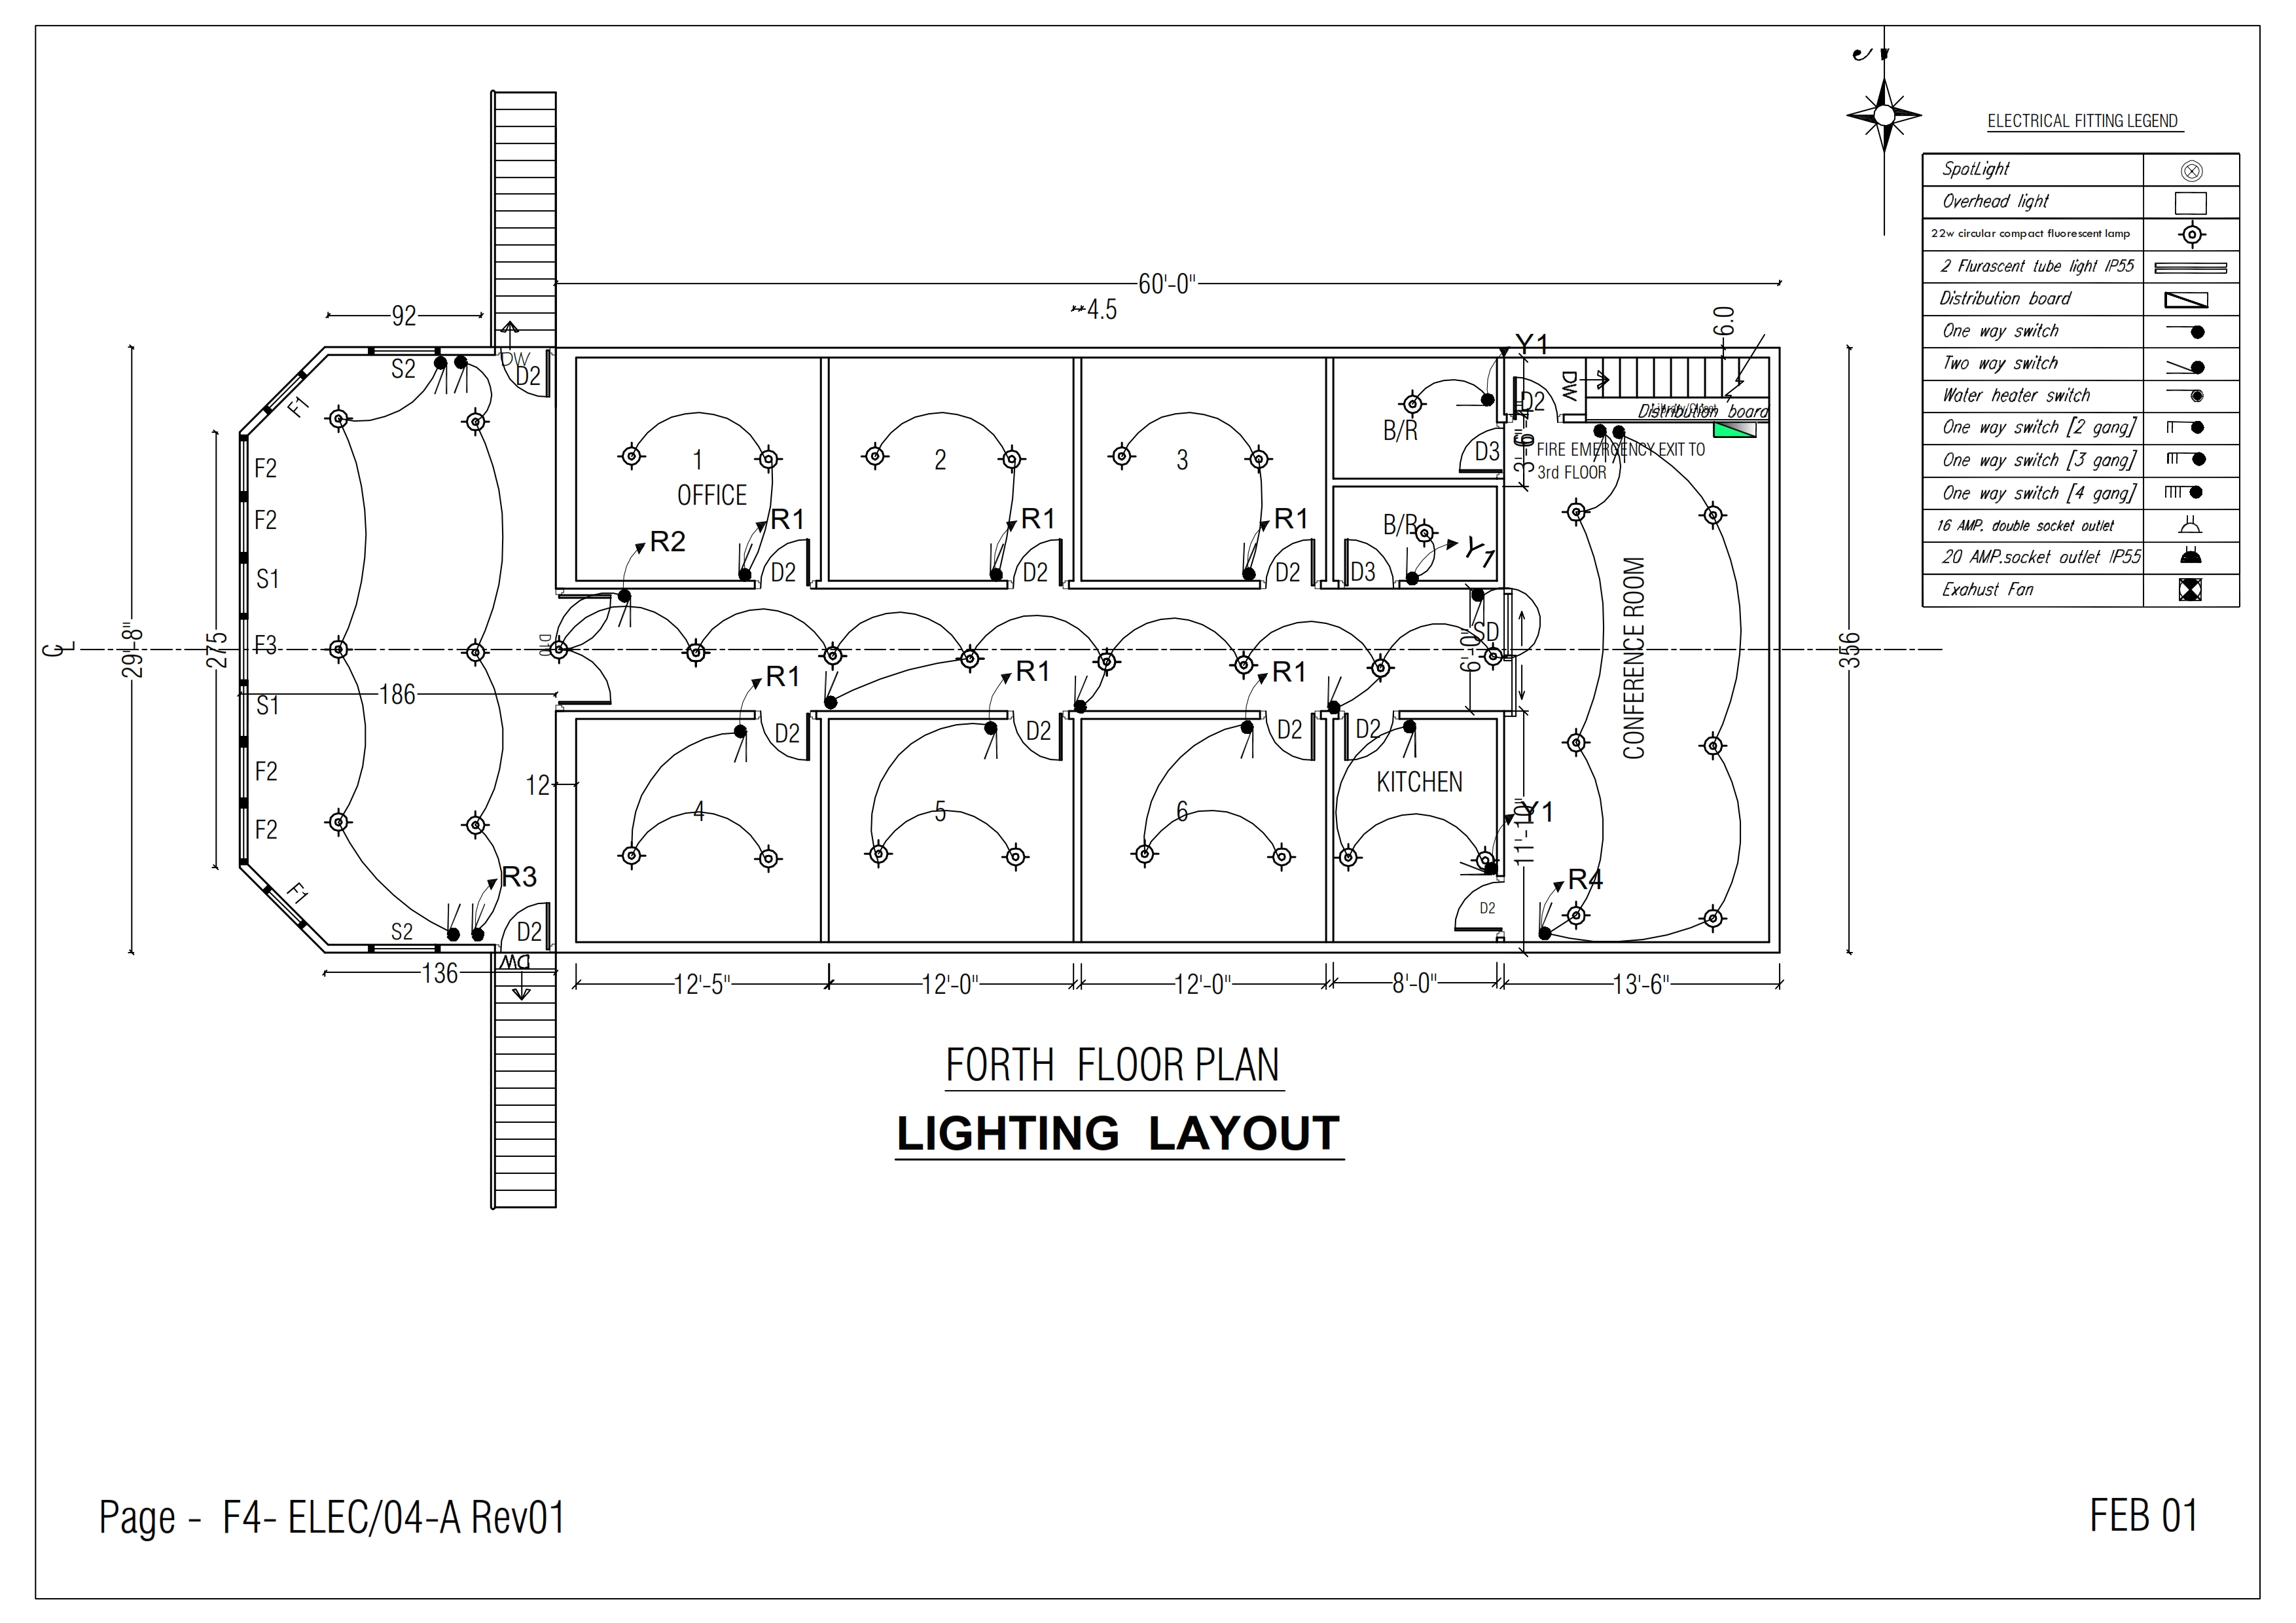 Draw Electricalplumbing Drawings By Amil077 2 Way Switch One